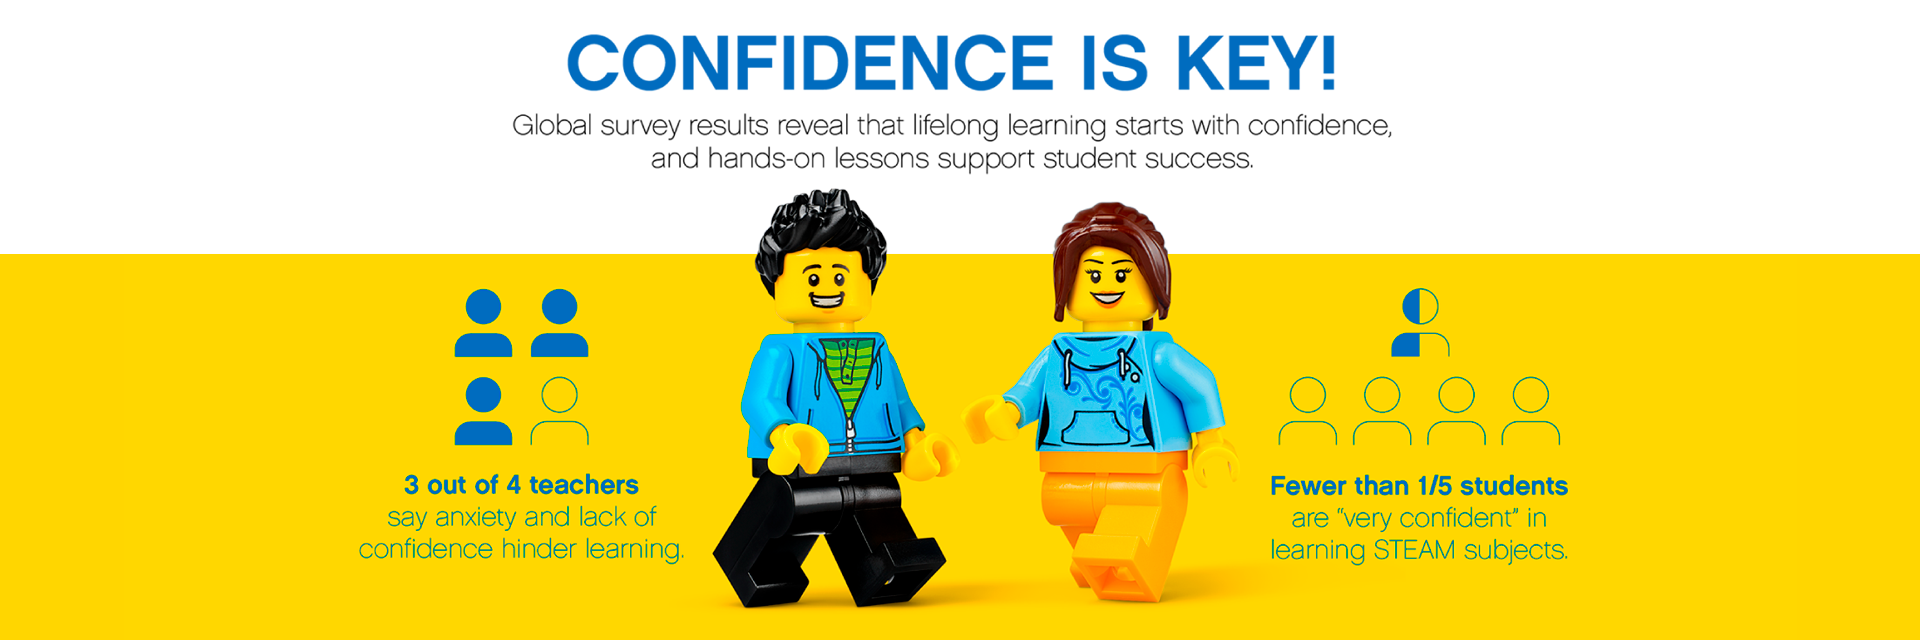 Build Students Confidence In Steam And Stem Learning With Lego